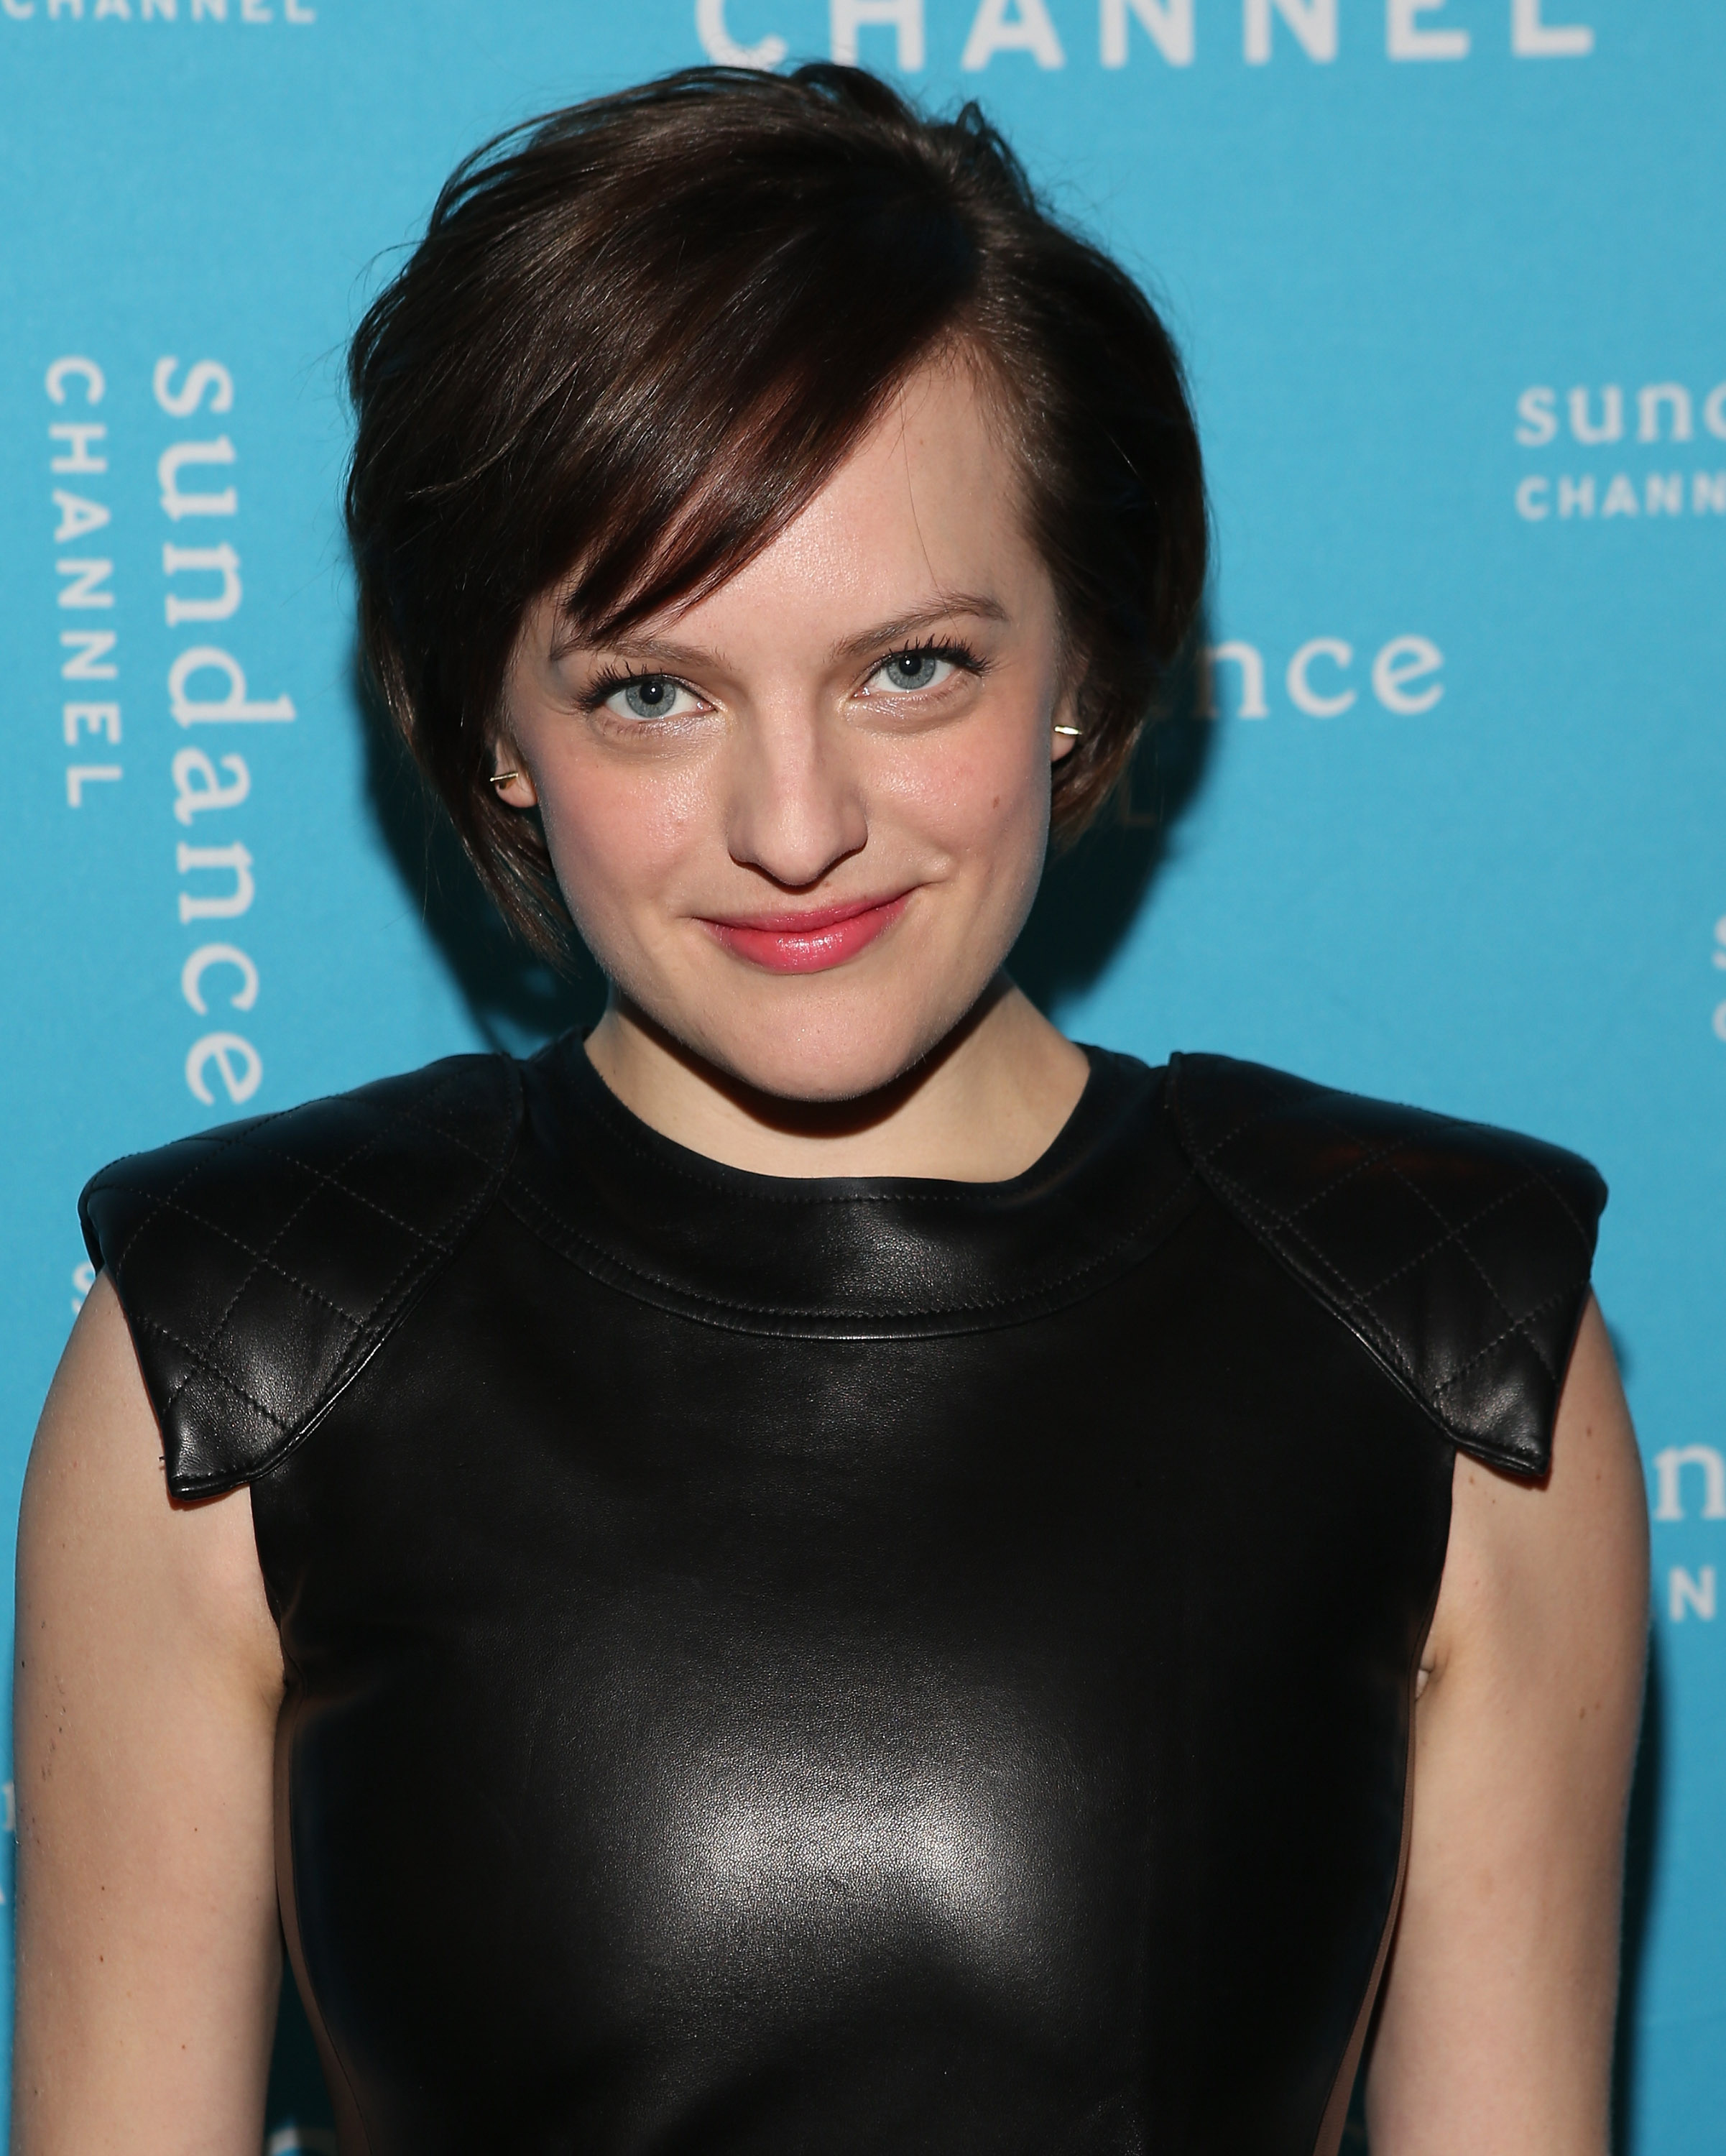 Elisabeth Moss earned a  million dollar salary, leaving the net worth at 0.8 million in 2017